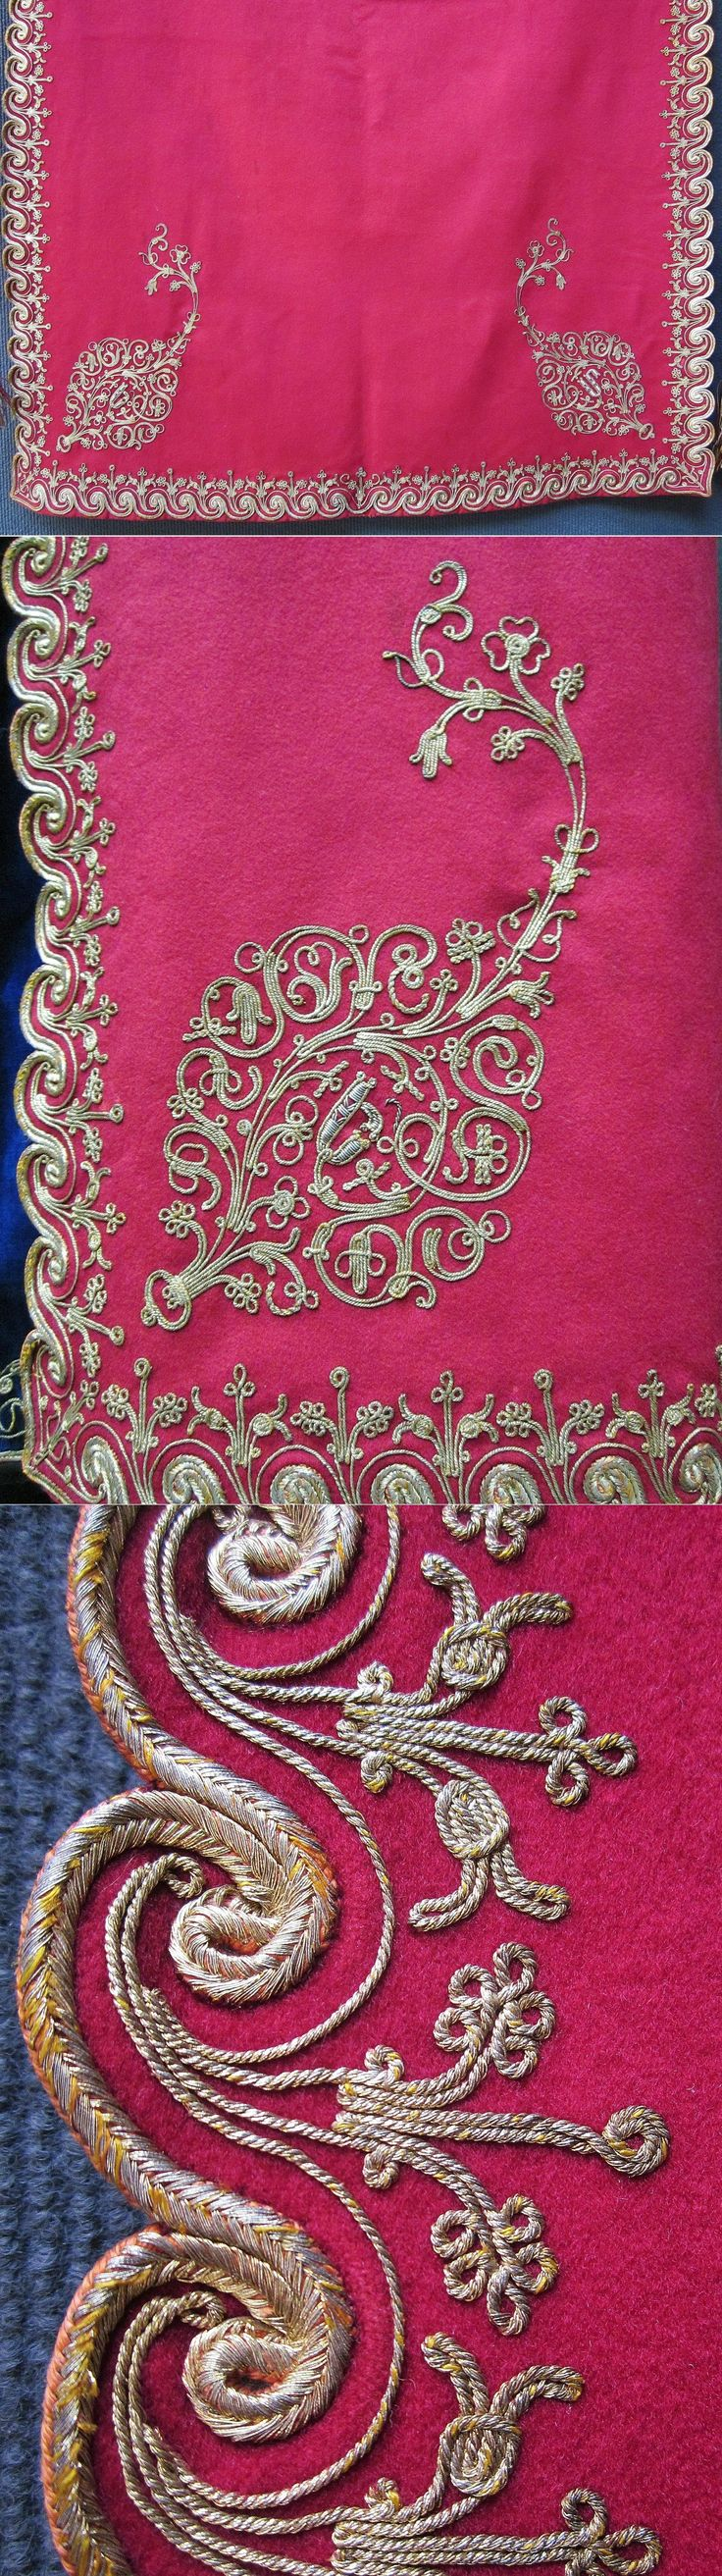 Close-ups of a traditional embroidered apron from the Olti/Oltu region (North of Erzurum province). Part of an Armenian (well-to-do) festive costume, early 20th century. Metal thread embroidery on combed wool. (Inv.nr. önL078 - Kavak Costume Collection - Antwerpen/Belgium).